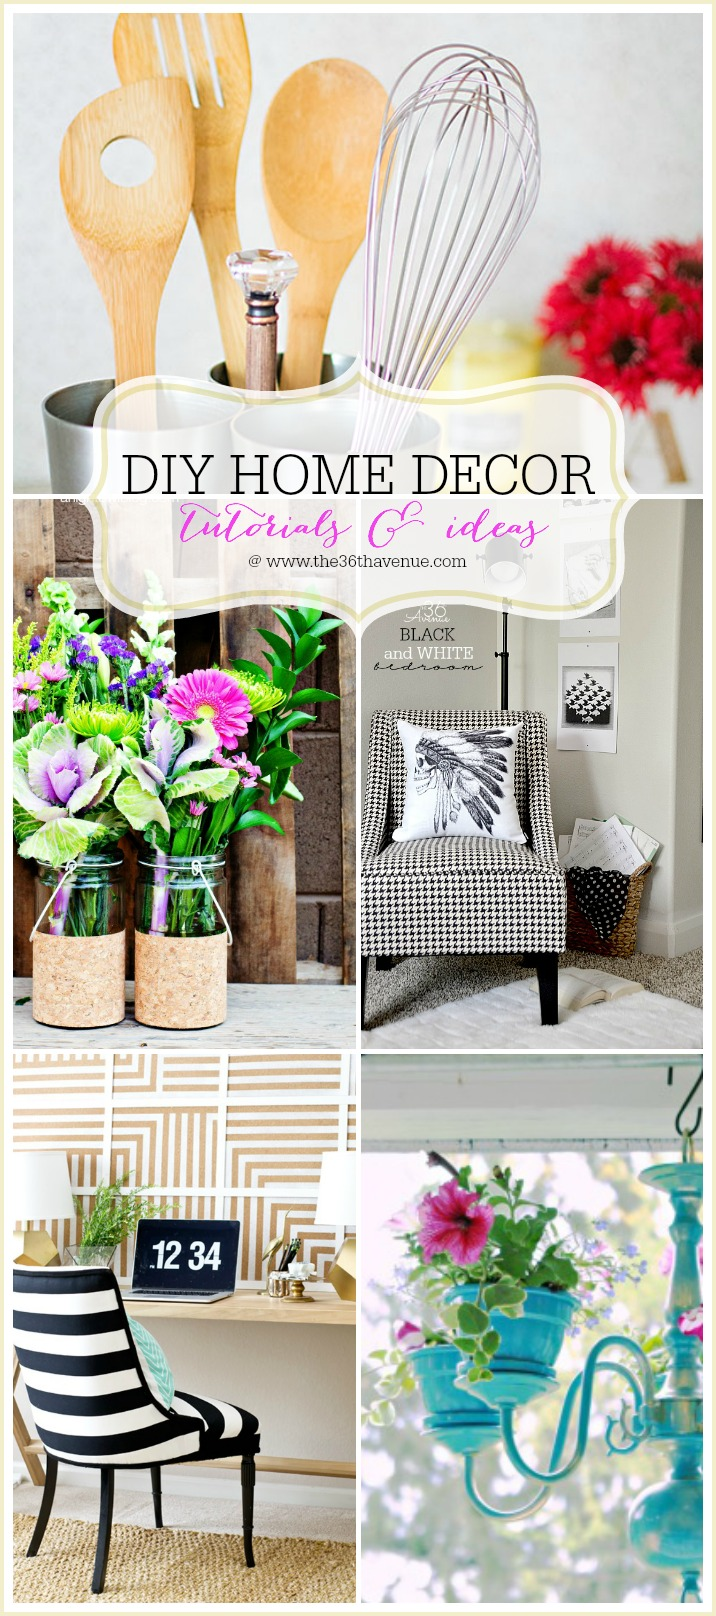 The 36th avenue home decor diy projects the 36th avenue for Where to get home decor